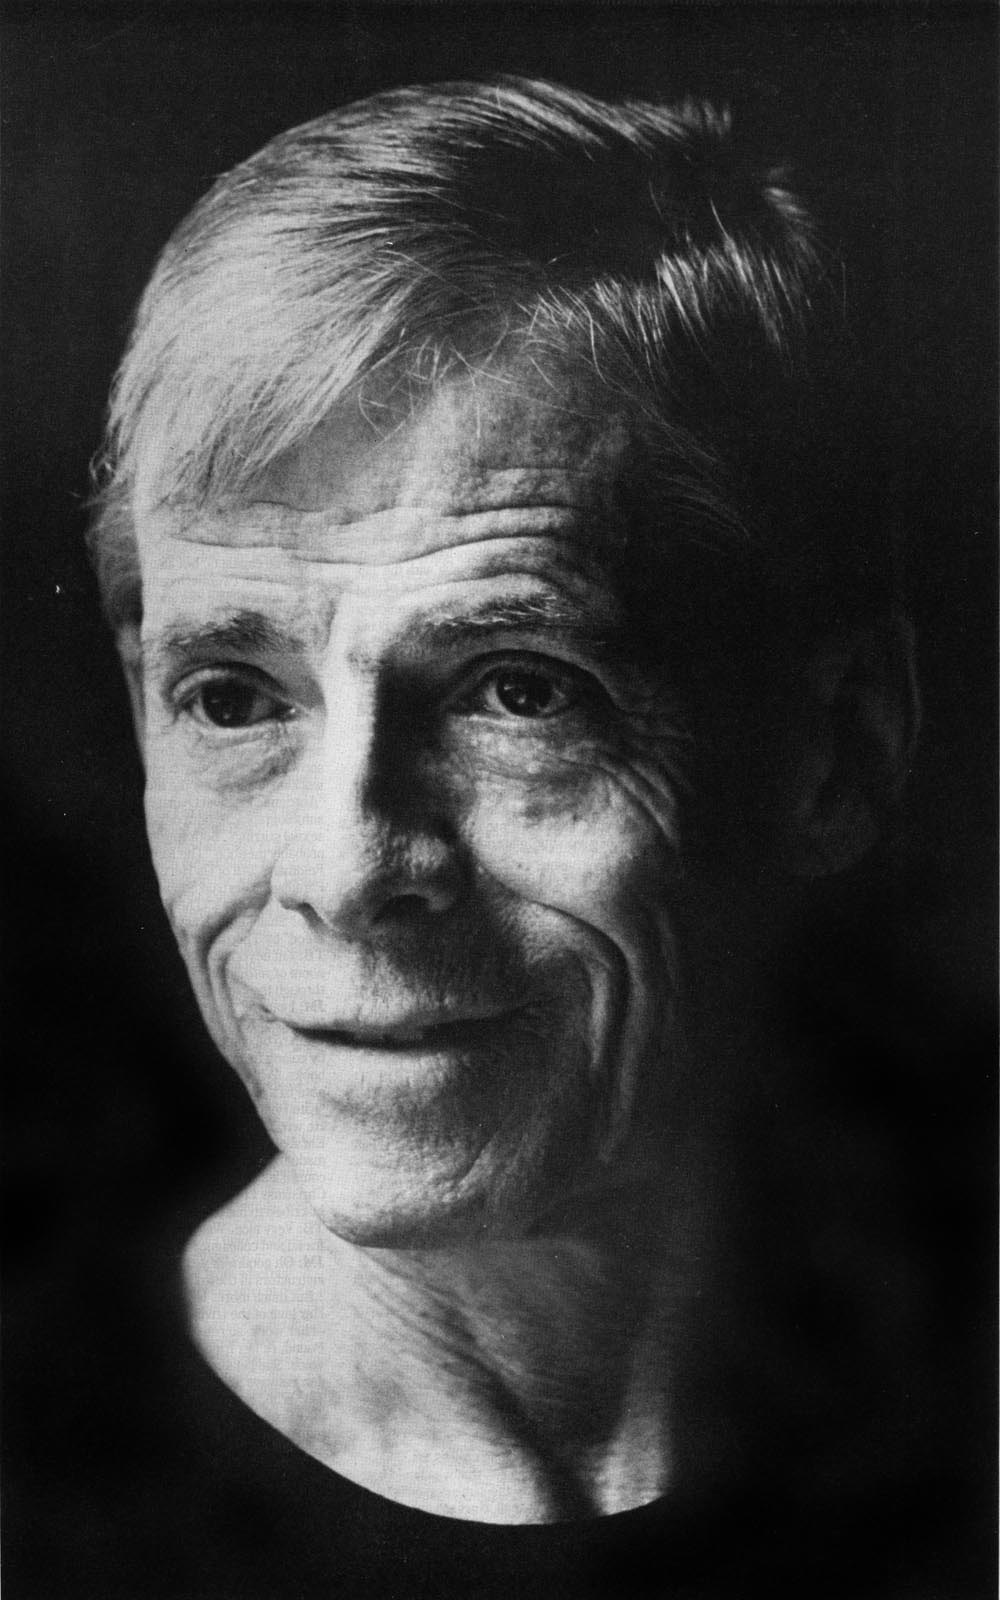 James Merrill architect